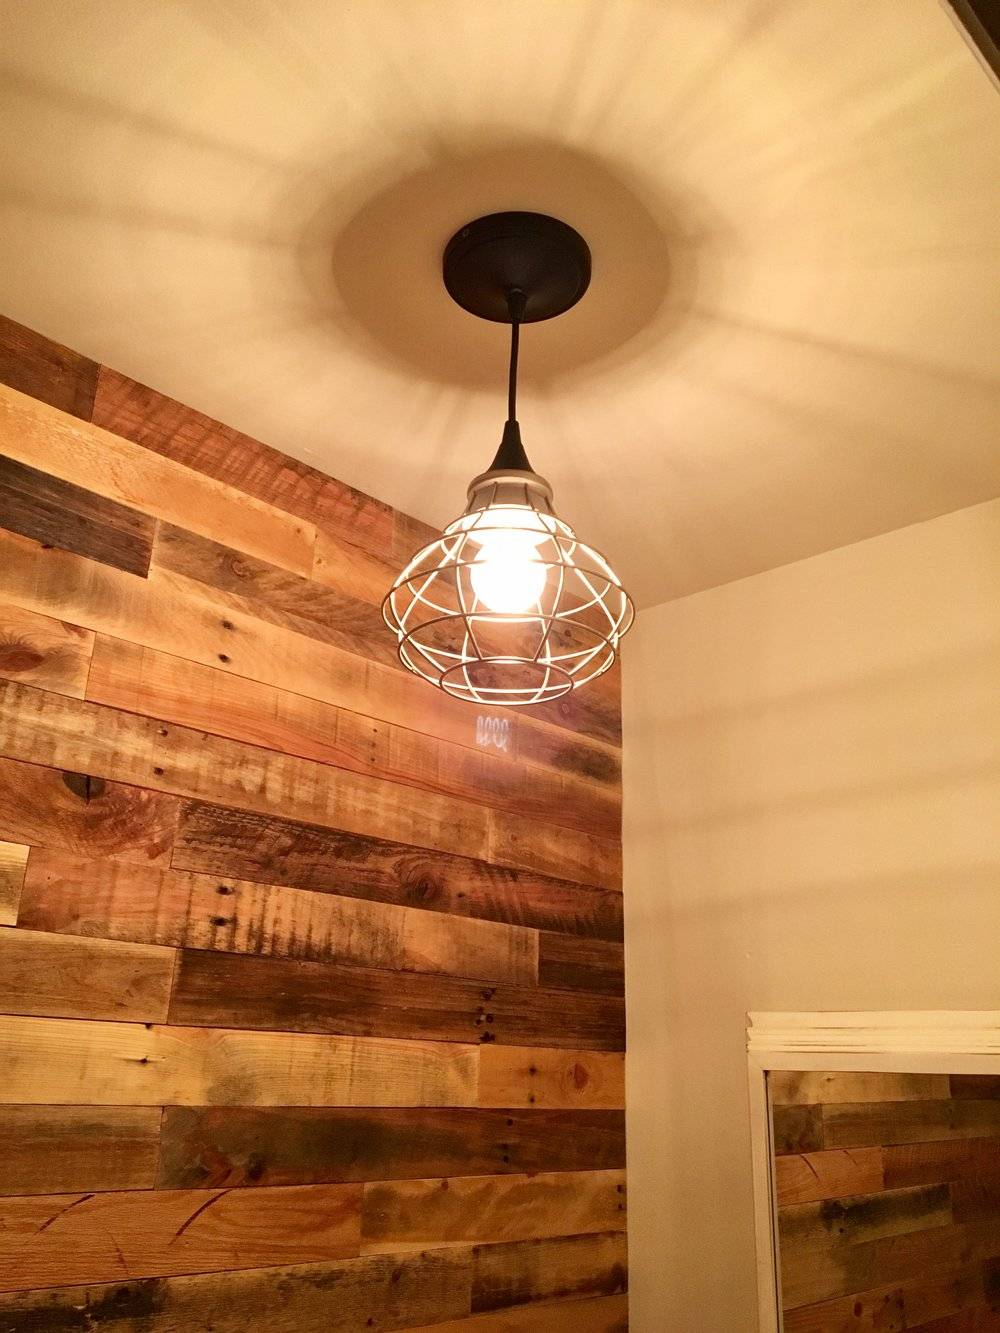 ... Rustic Industrial, Reclaimed Wood Interiors, Accent Wall